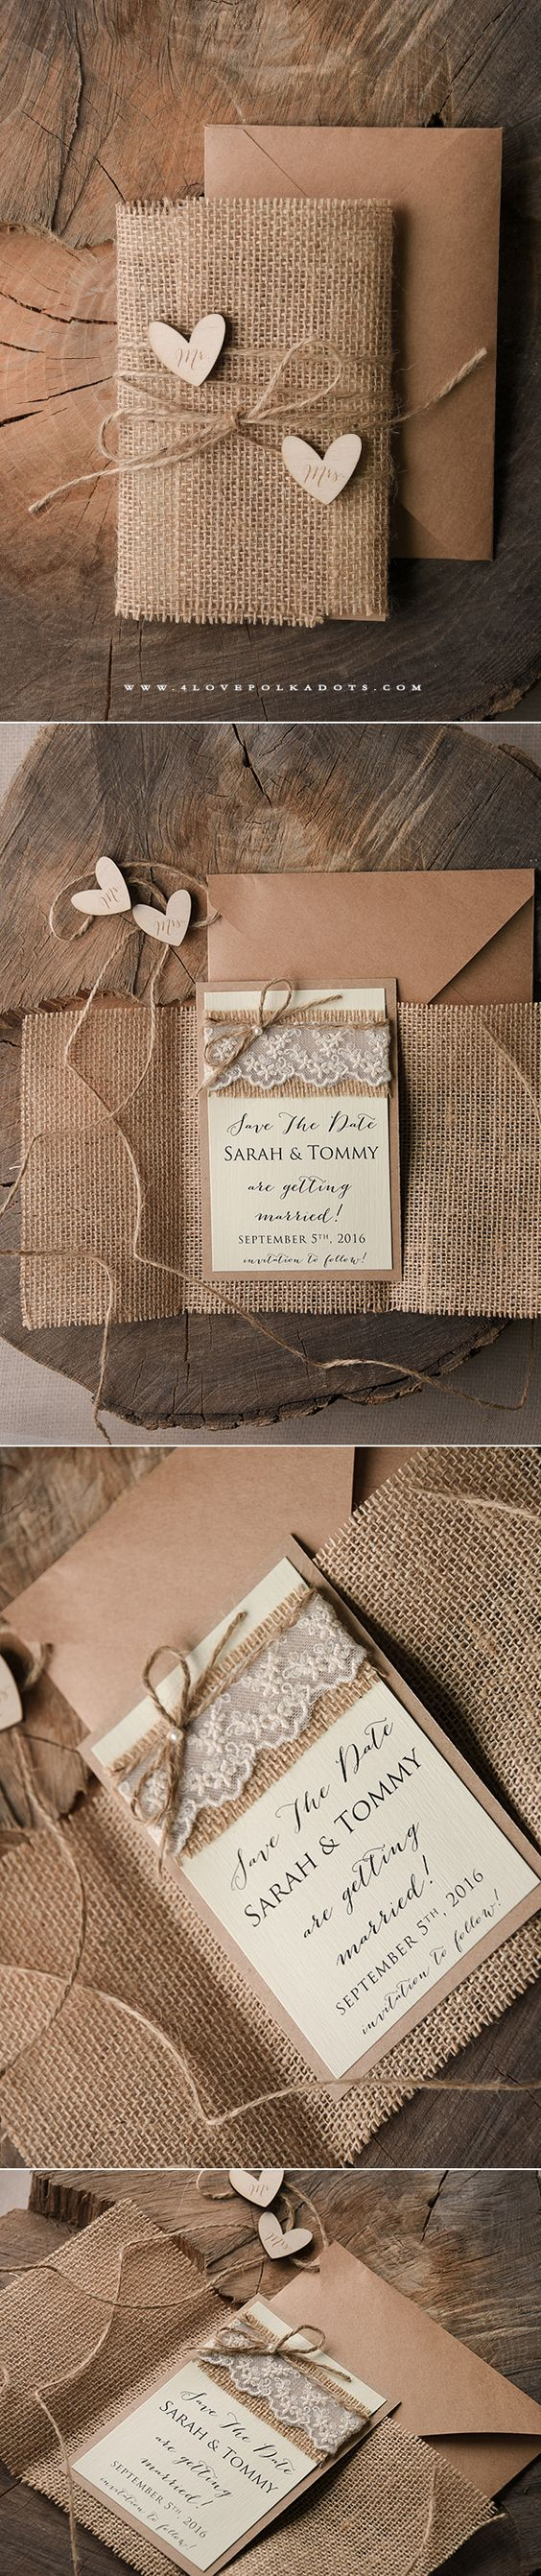 2 Beautiful Rustic Wedding Ideas